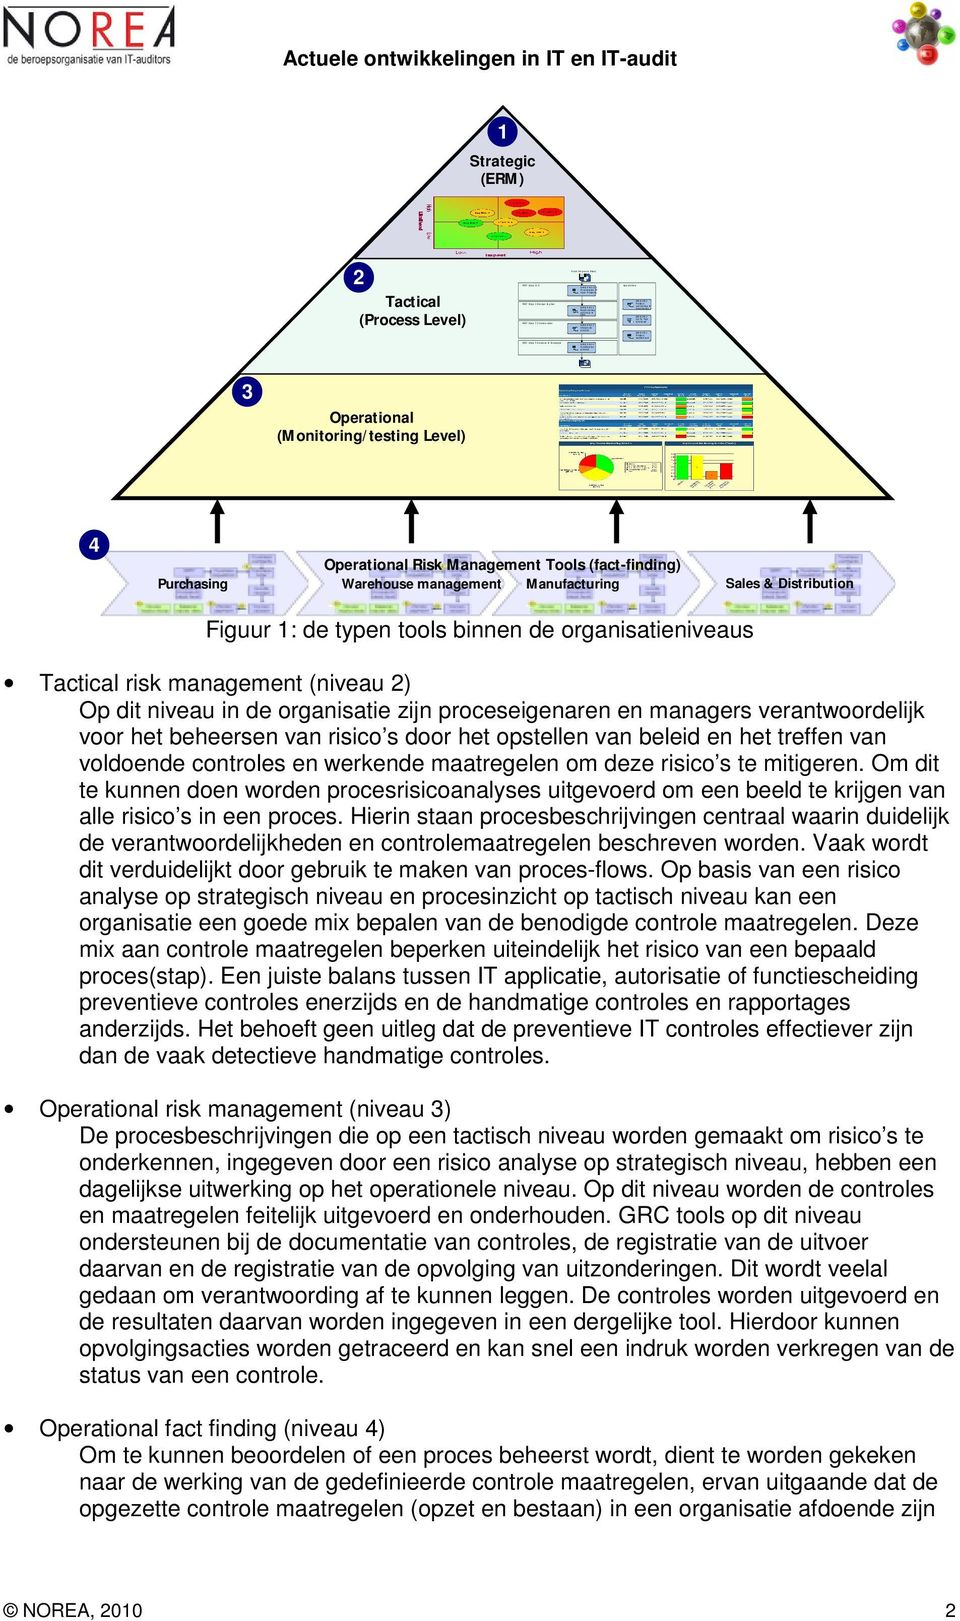 S T ijd s chrijv en P ro je ct s ettlem e nt Actuele ontwikkelingen in IT en IT-audit 1 Strategic (ERM) 2 Tactical (Process Level) 3 Operational (Monitoring/ testing Level) 4 Purchasing Operational